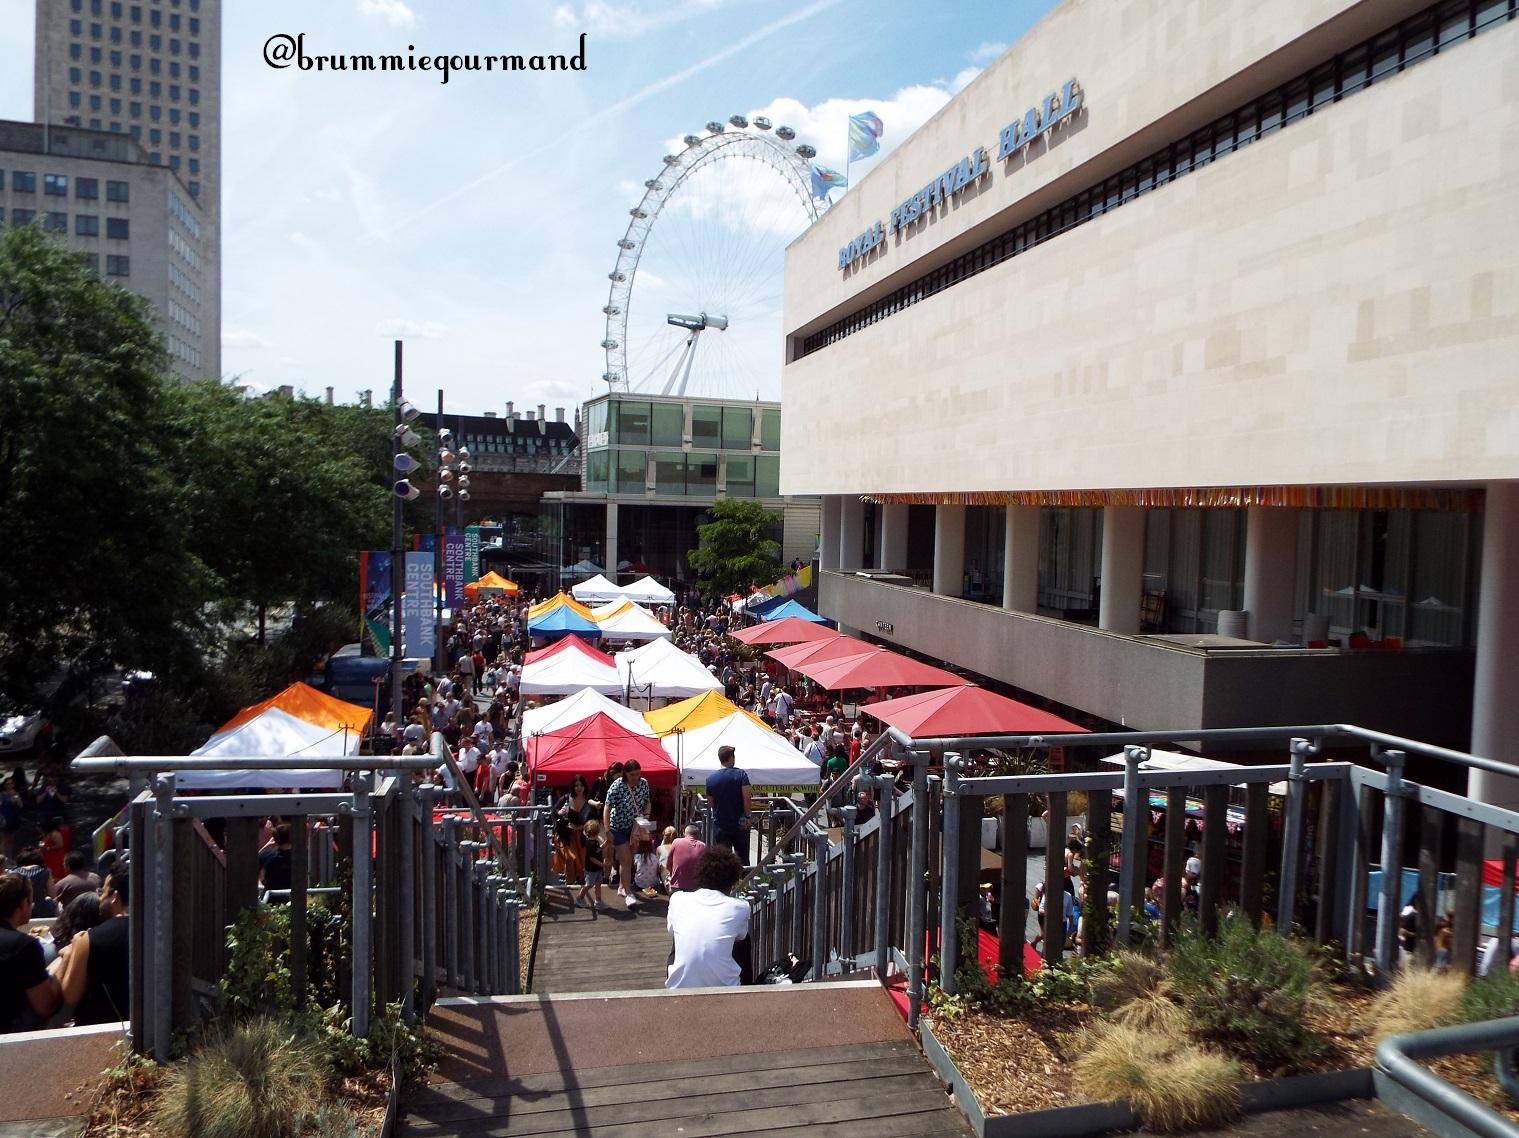 Capital Cuisine – A bite sized taste of Southbank Centre Food Market